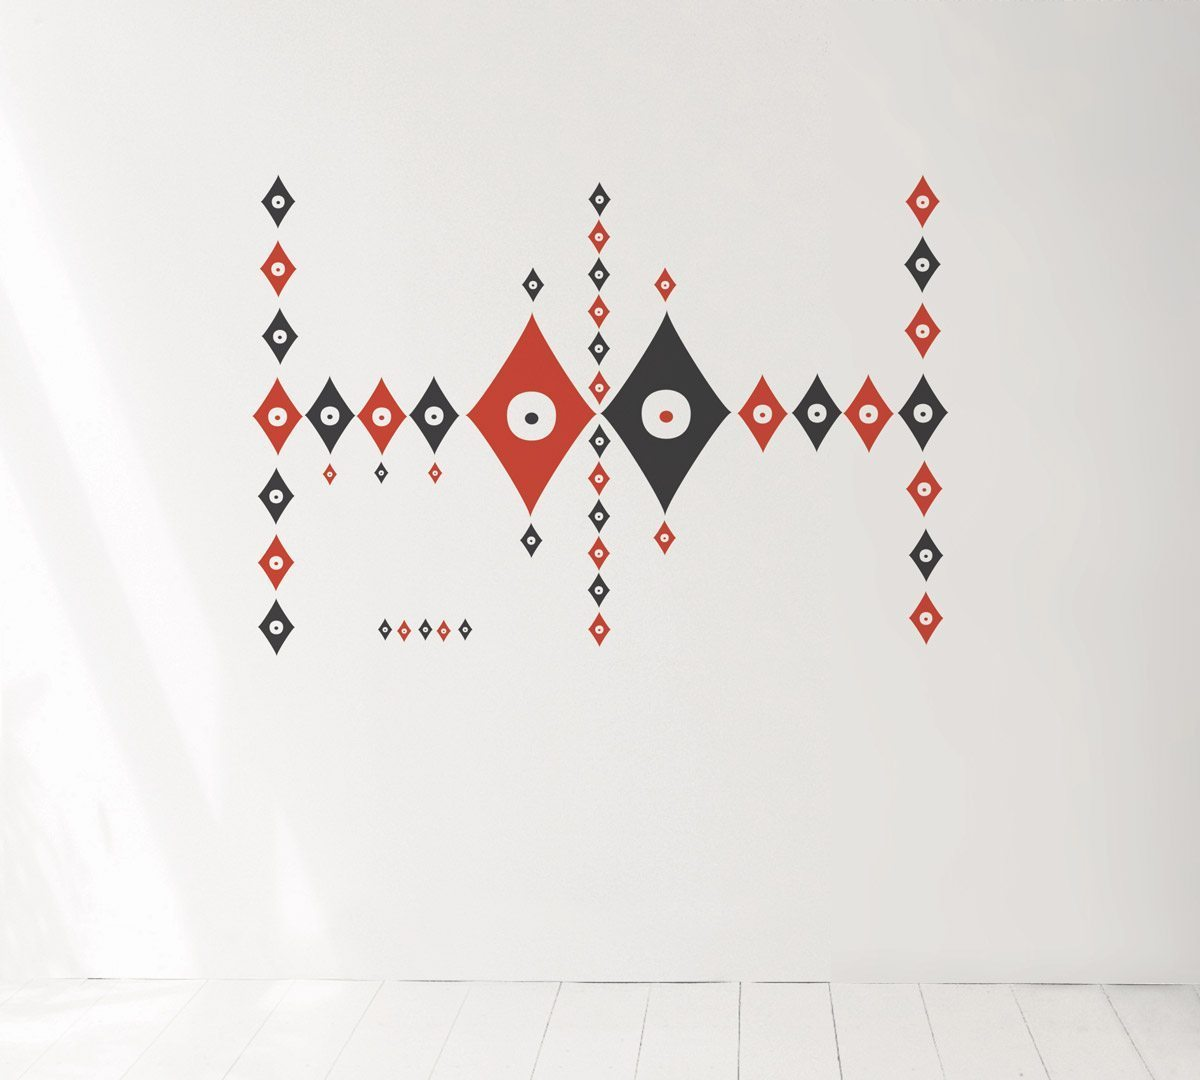 Wallsticker Rami, le motif Pokerface sur votre mur, design IchetKar, édition Domestic